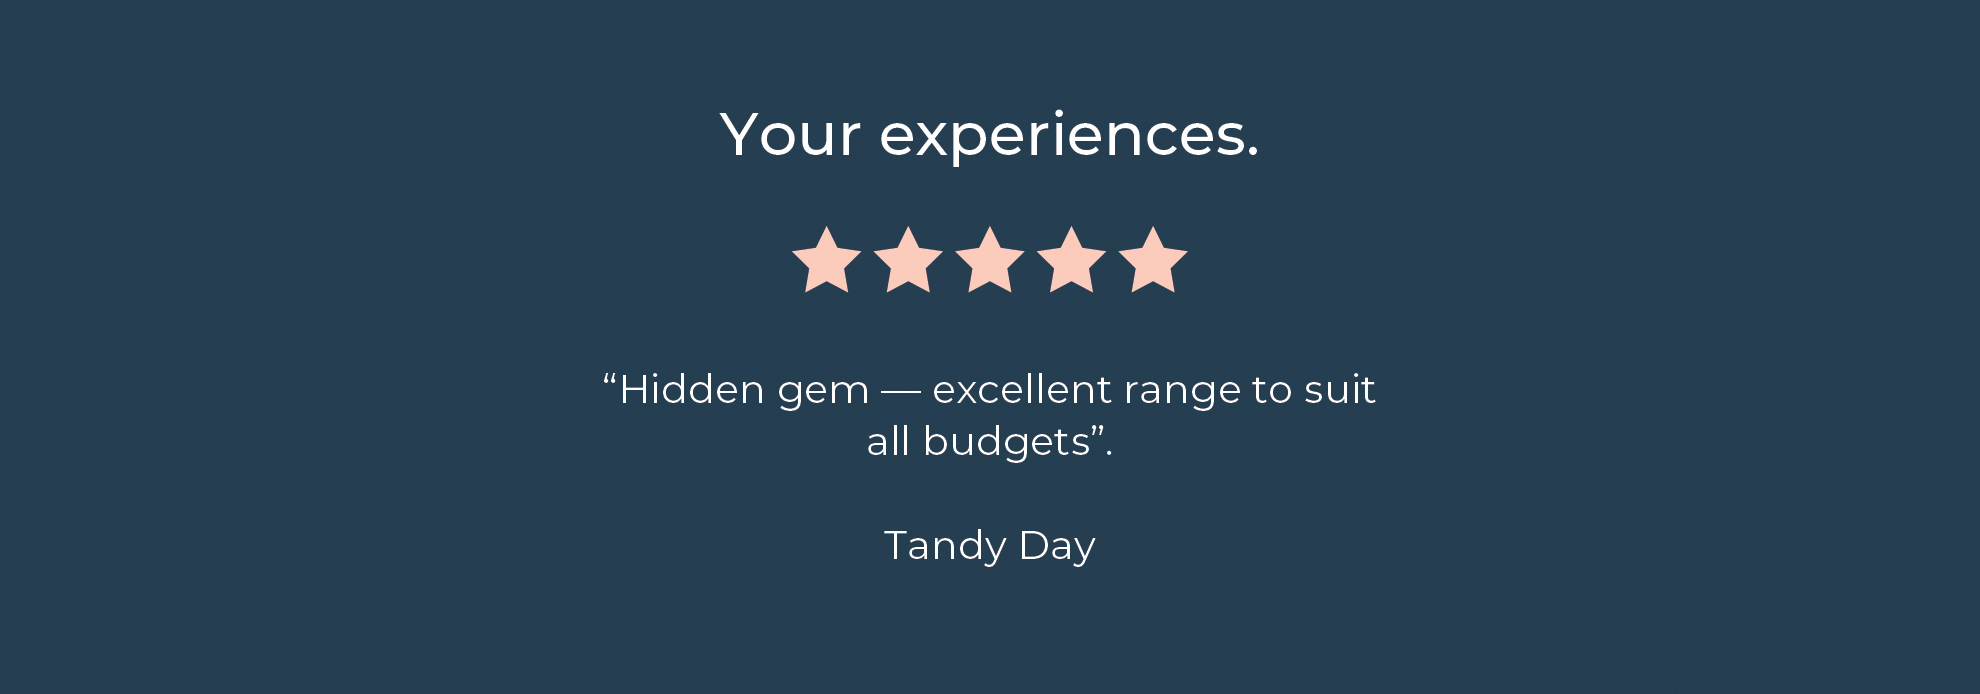 Your-experiences-customer-review-4